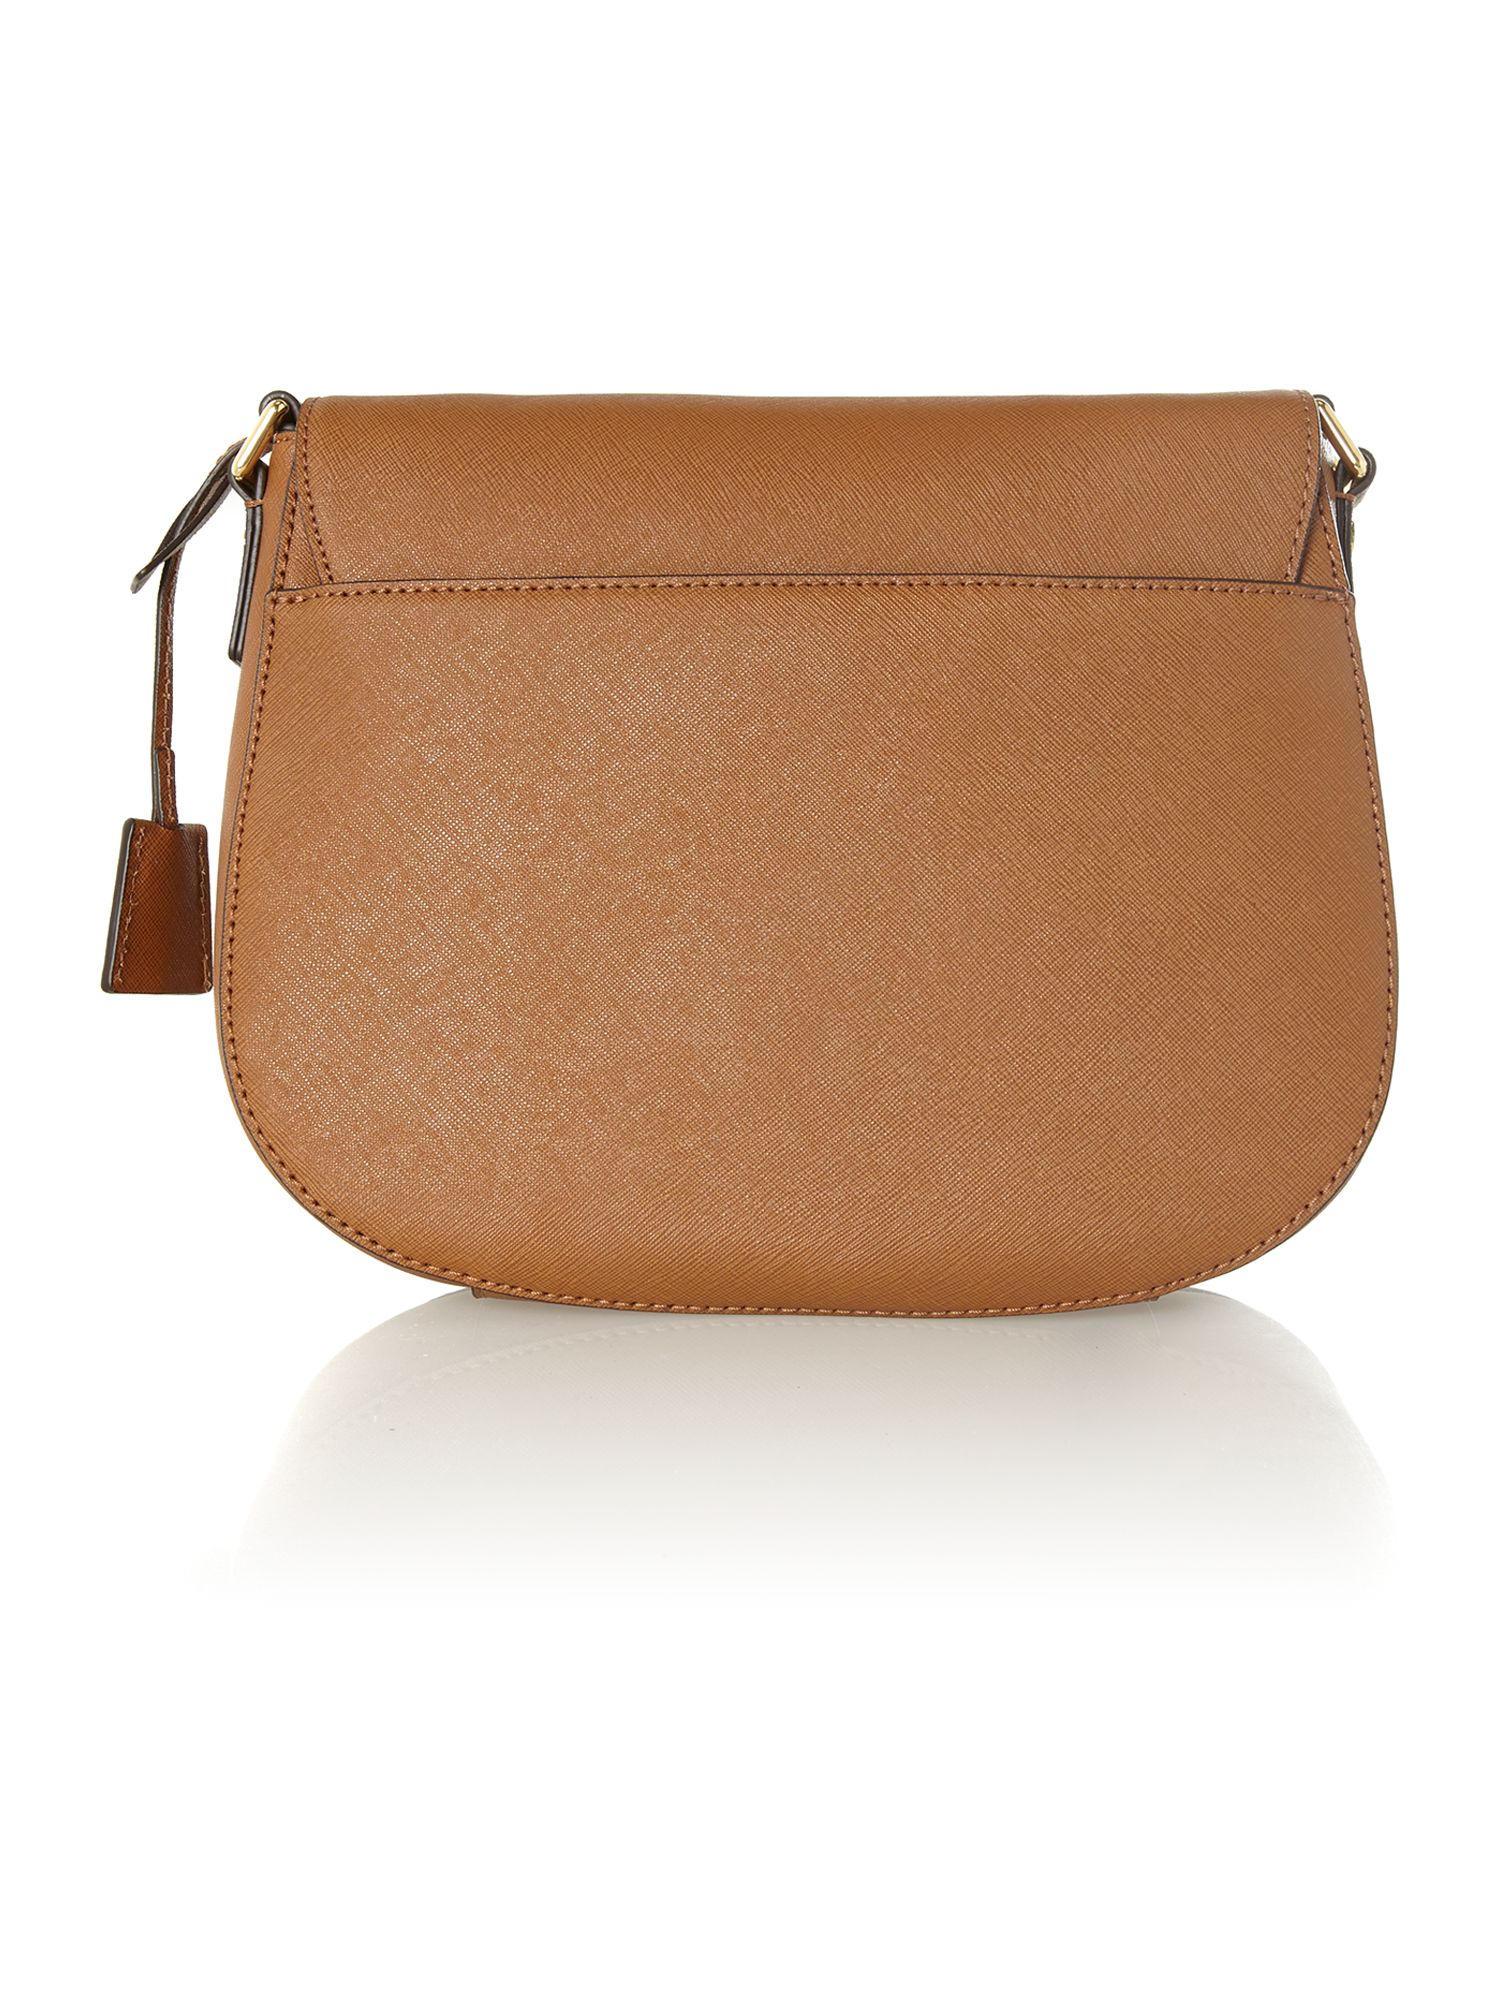 Hamilton tan flapover cross body